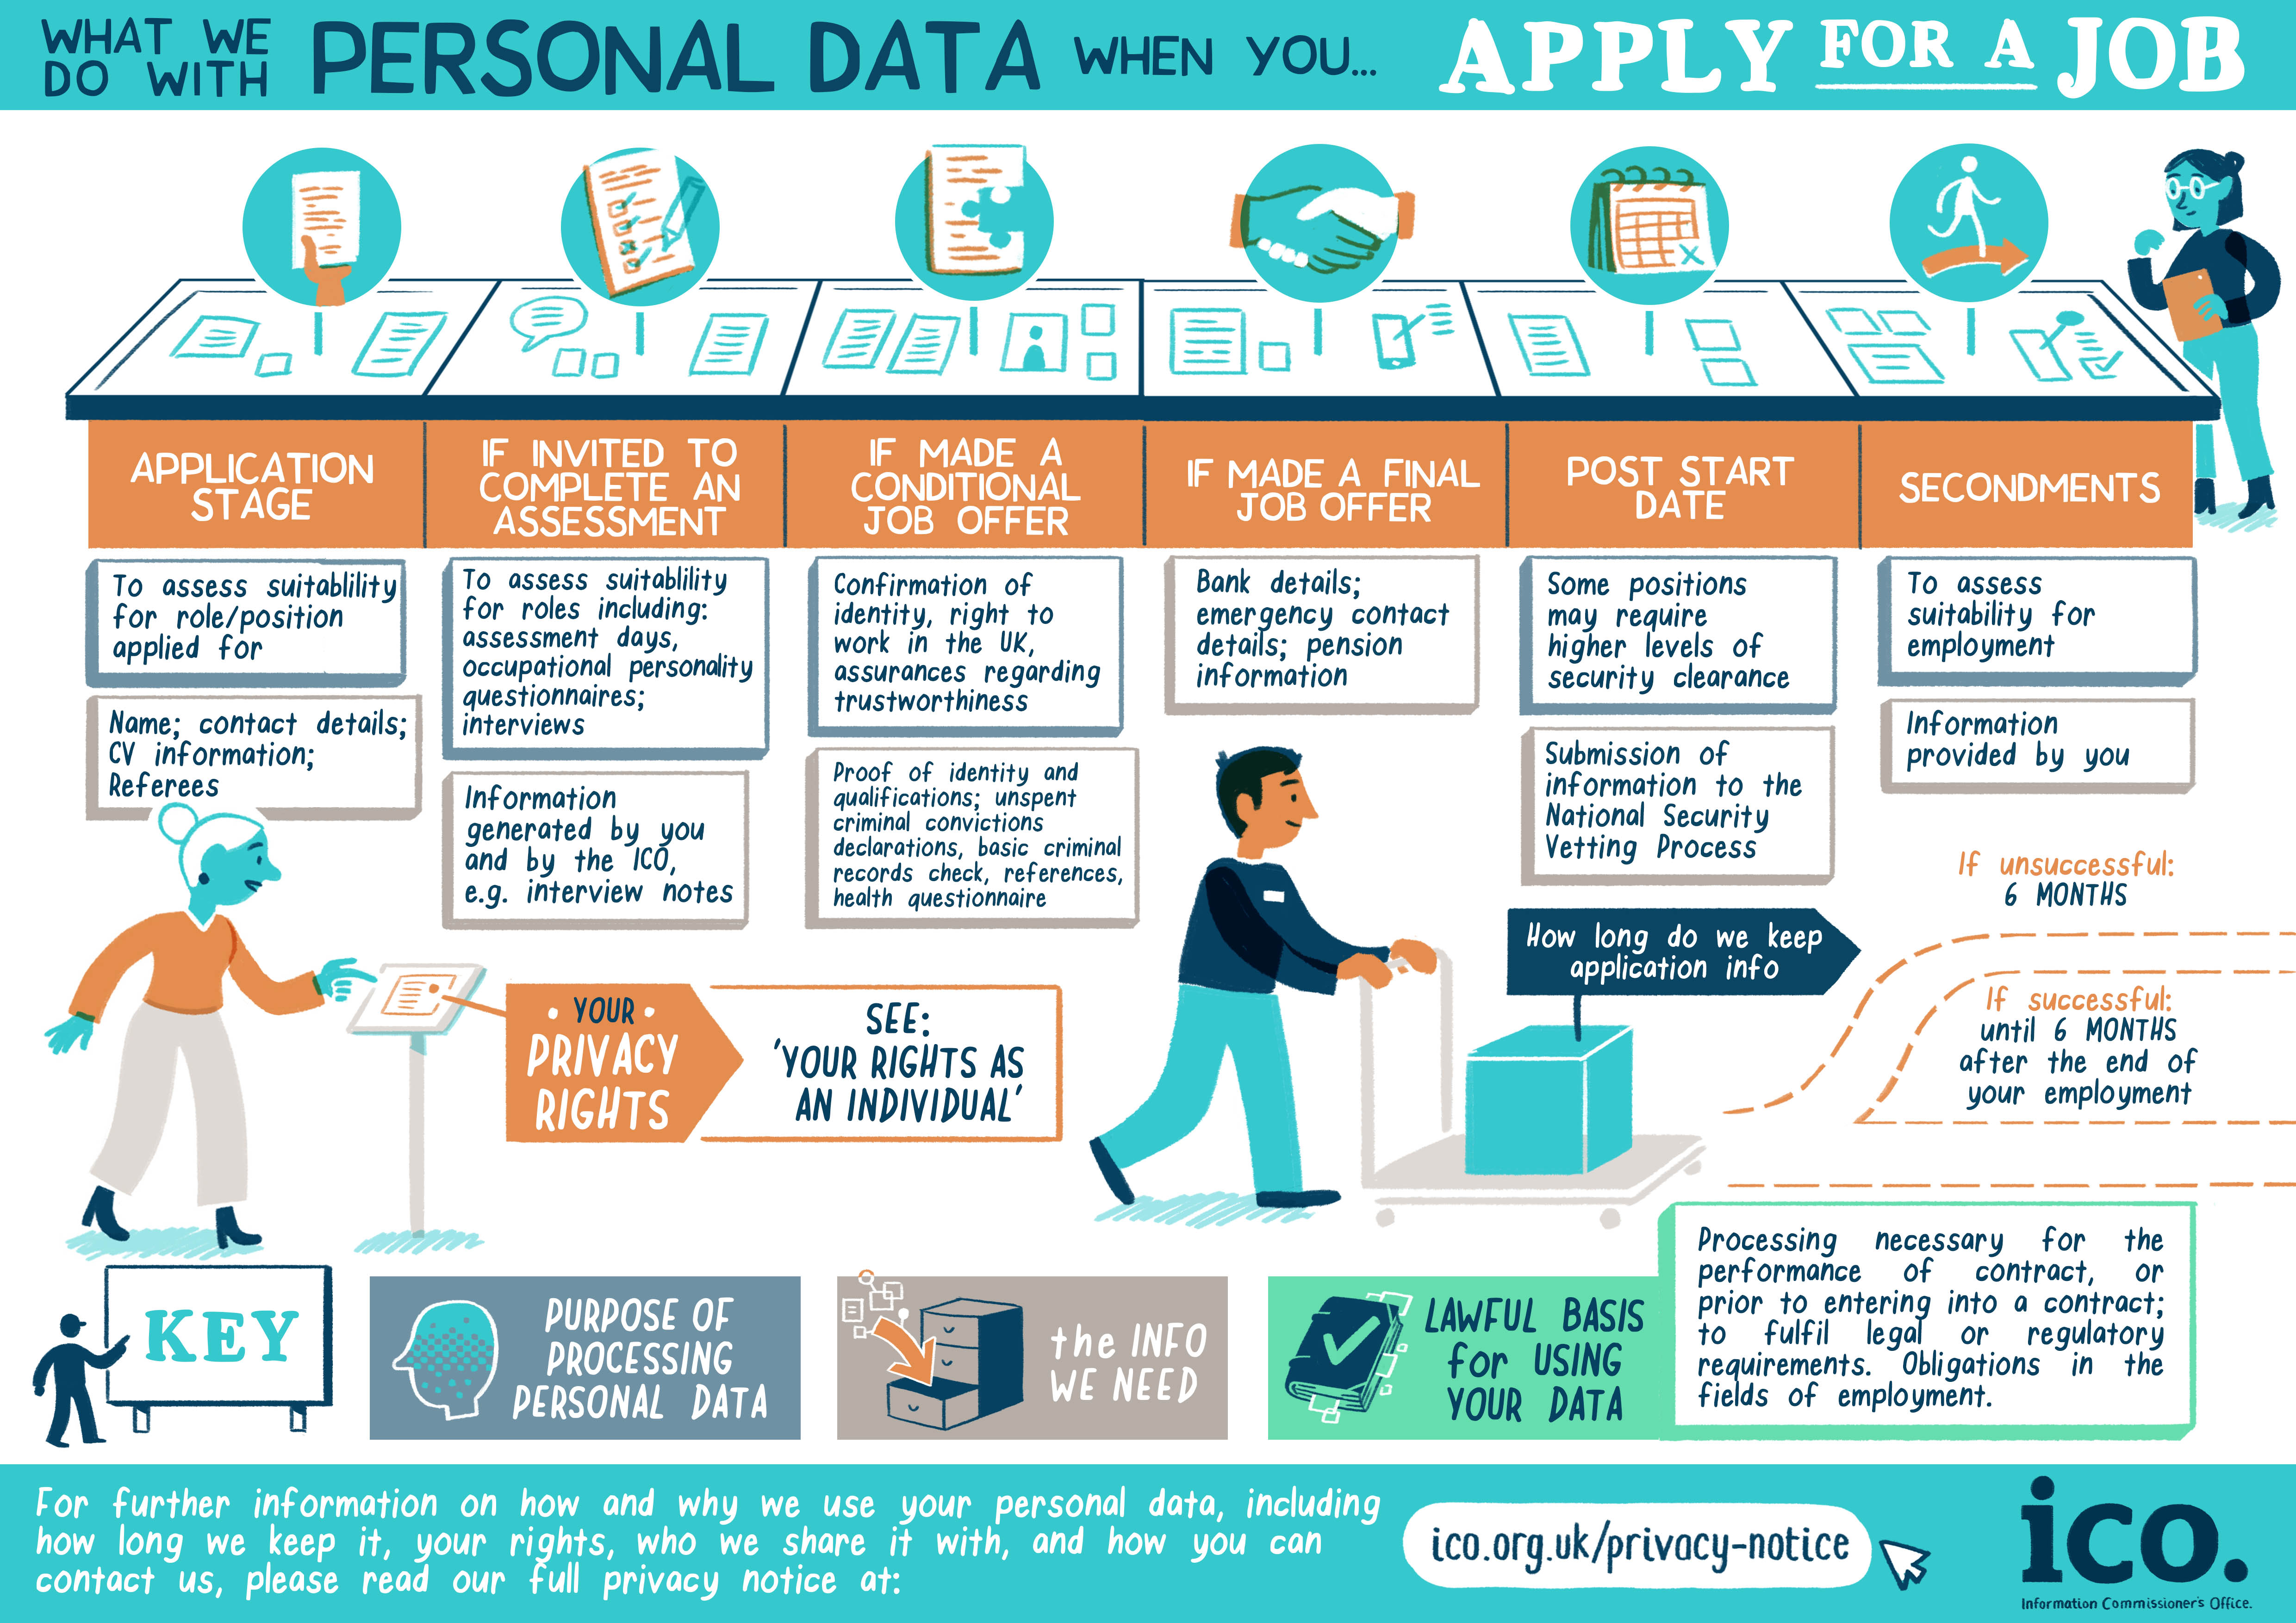 What we do with your personal data when you apply for a job